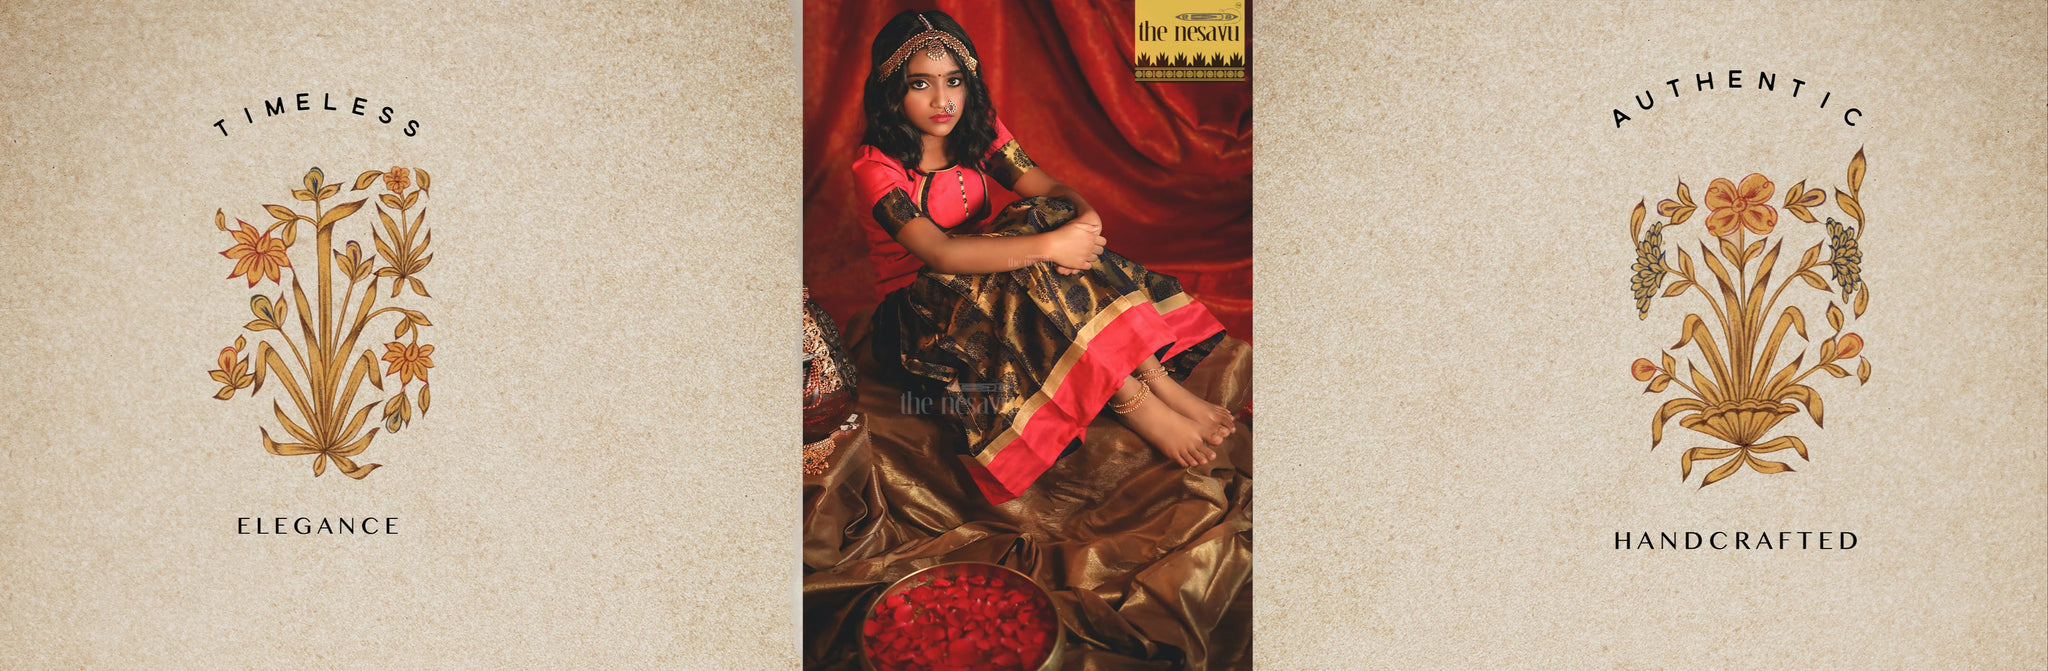 nesavu-pattu-pavadai-sattai-brand-from-india-tamil-nadu-coimbatore-salem-langa-voni-pavaadai-kids-ethnic-wear-aingini-collection